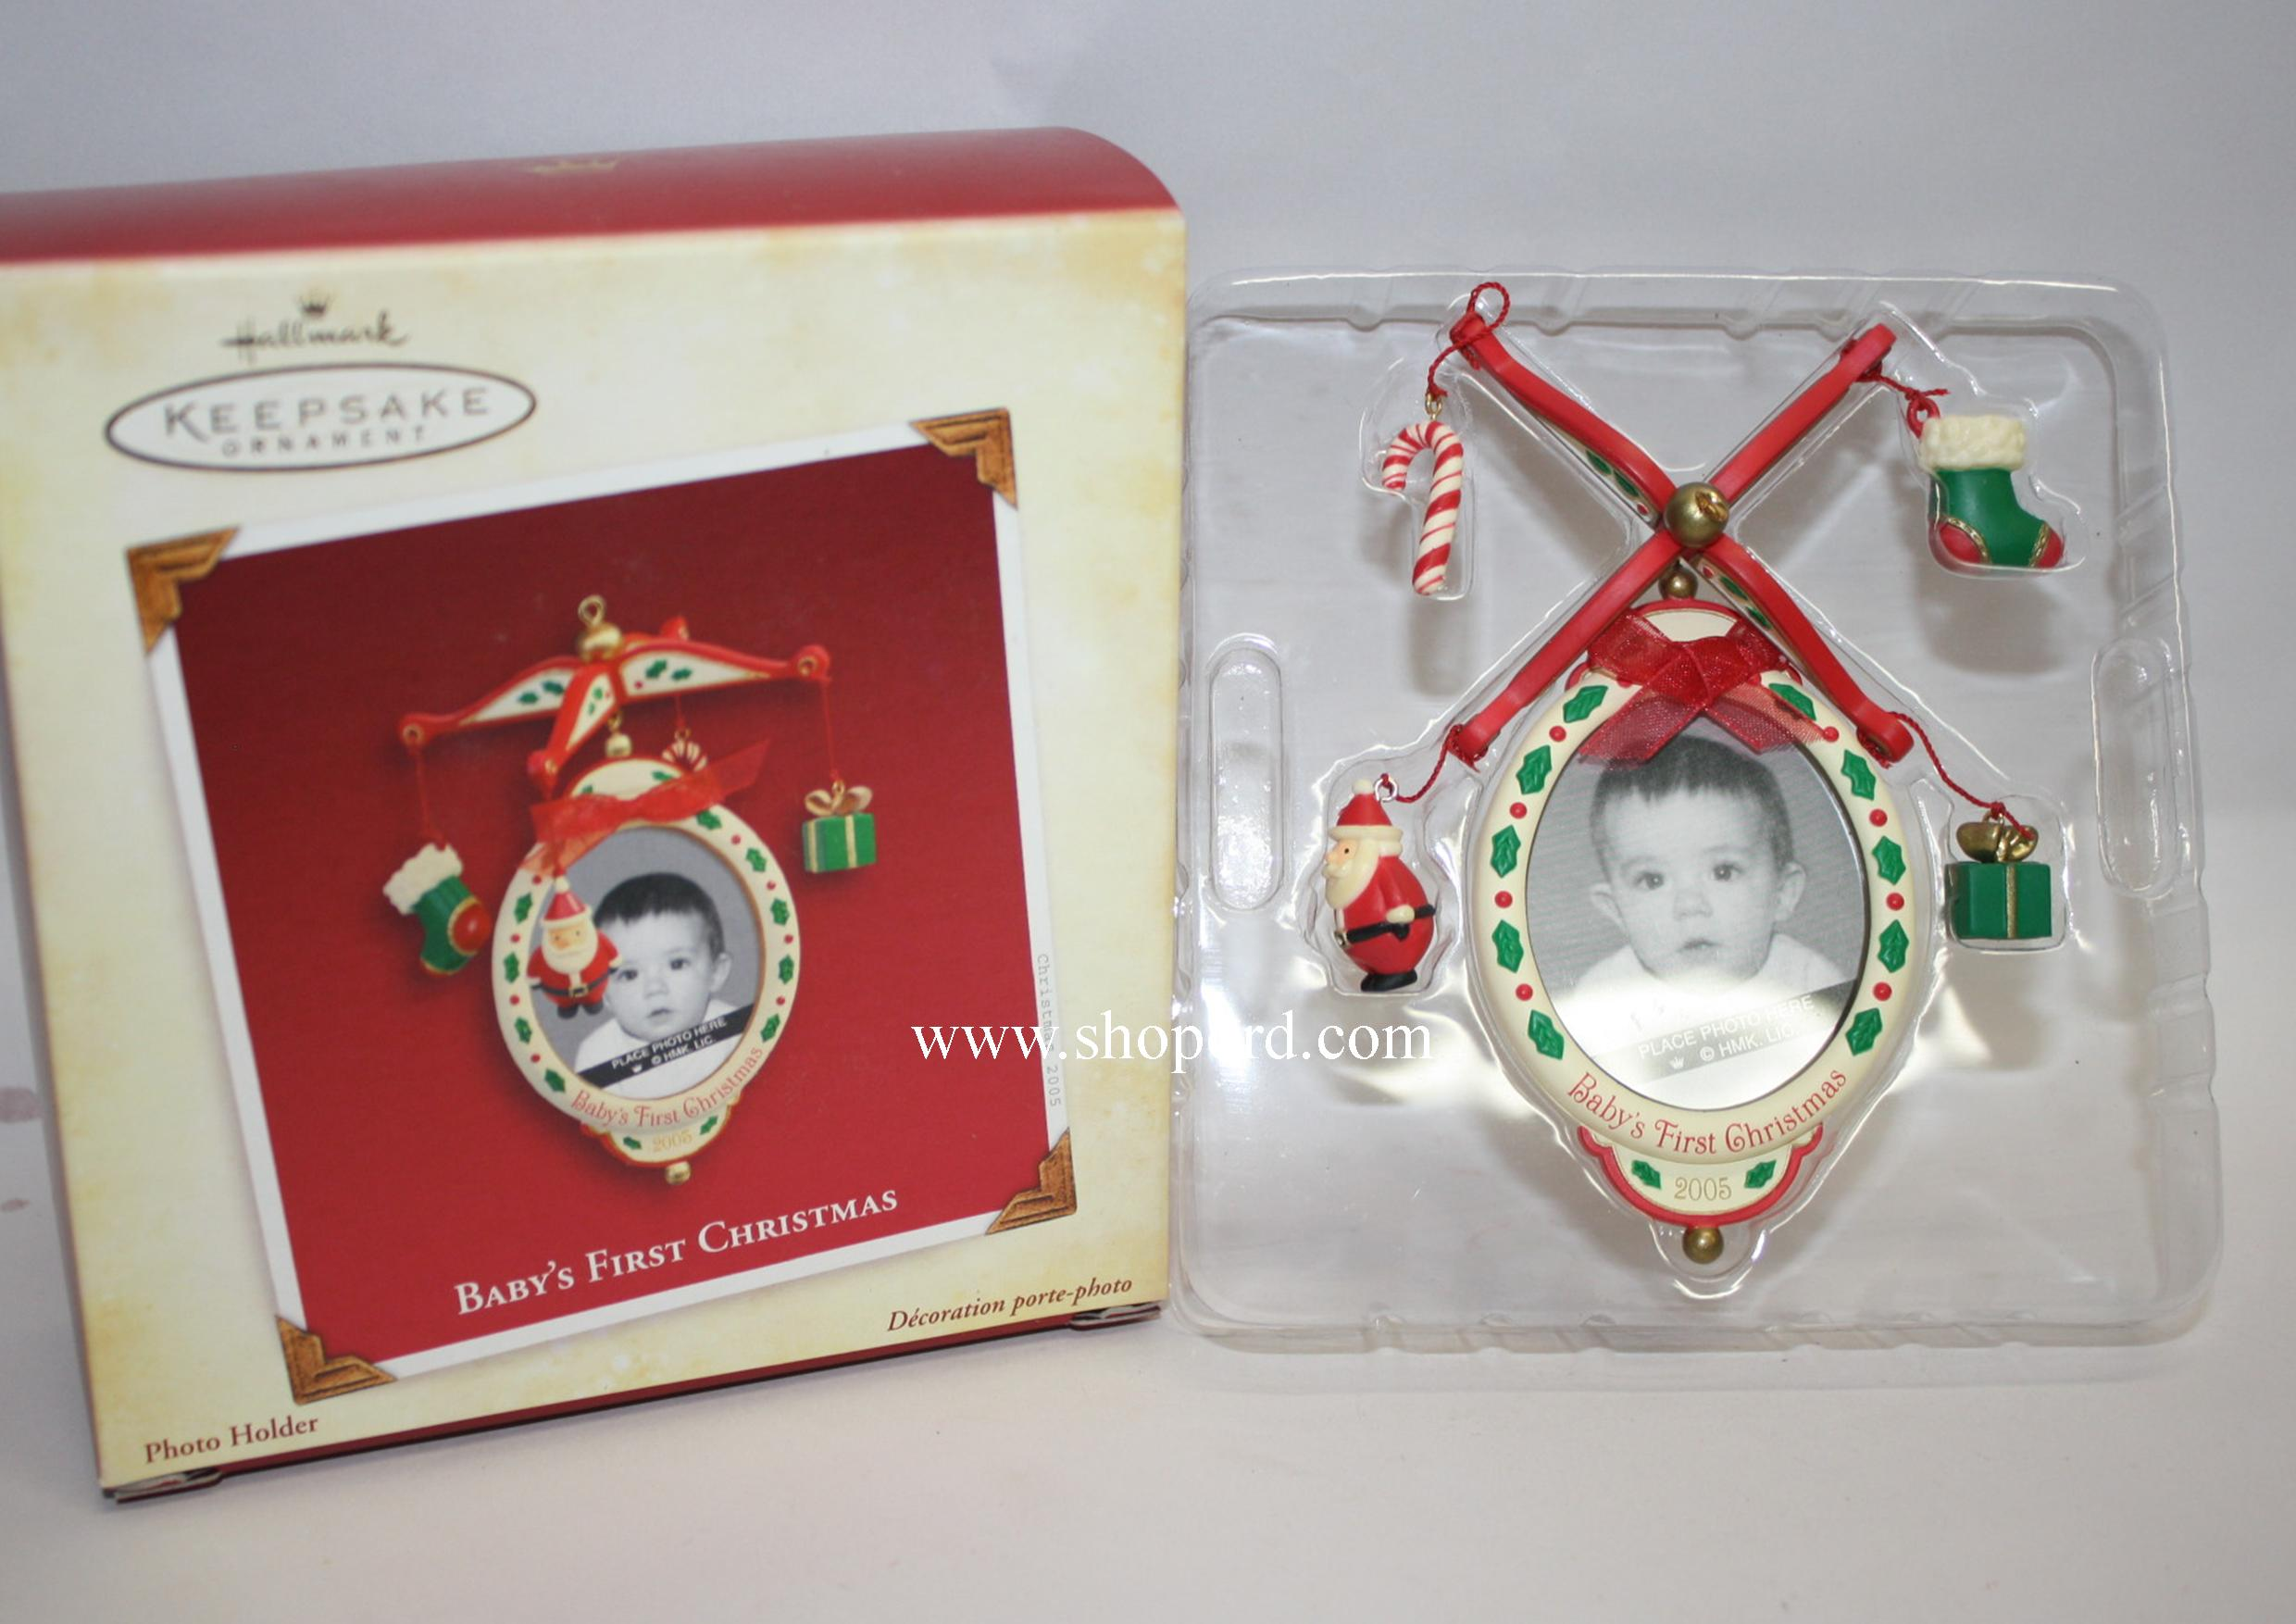 Hallmark 2005 Baby's First Christmas Photo Holder Ornament QXG4622